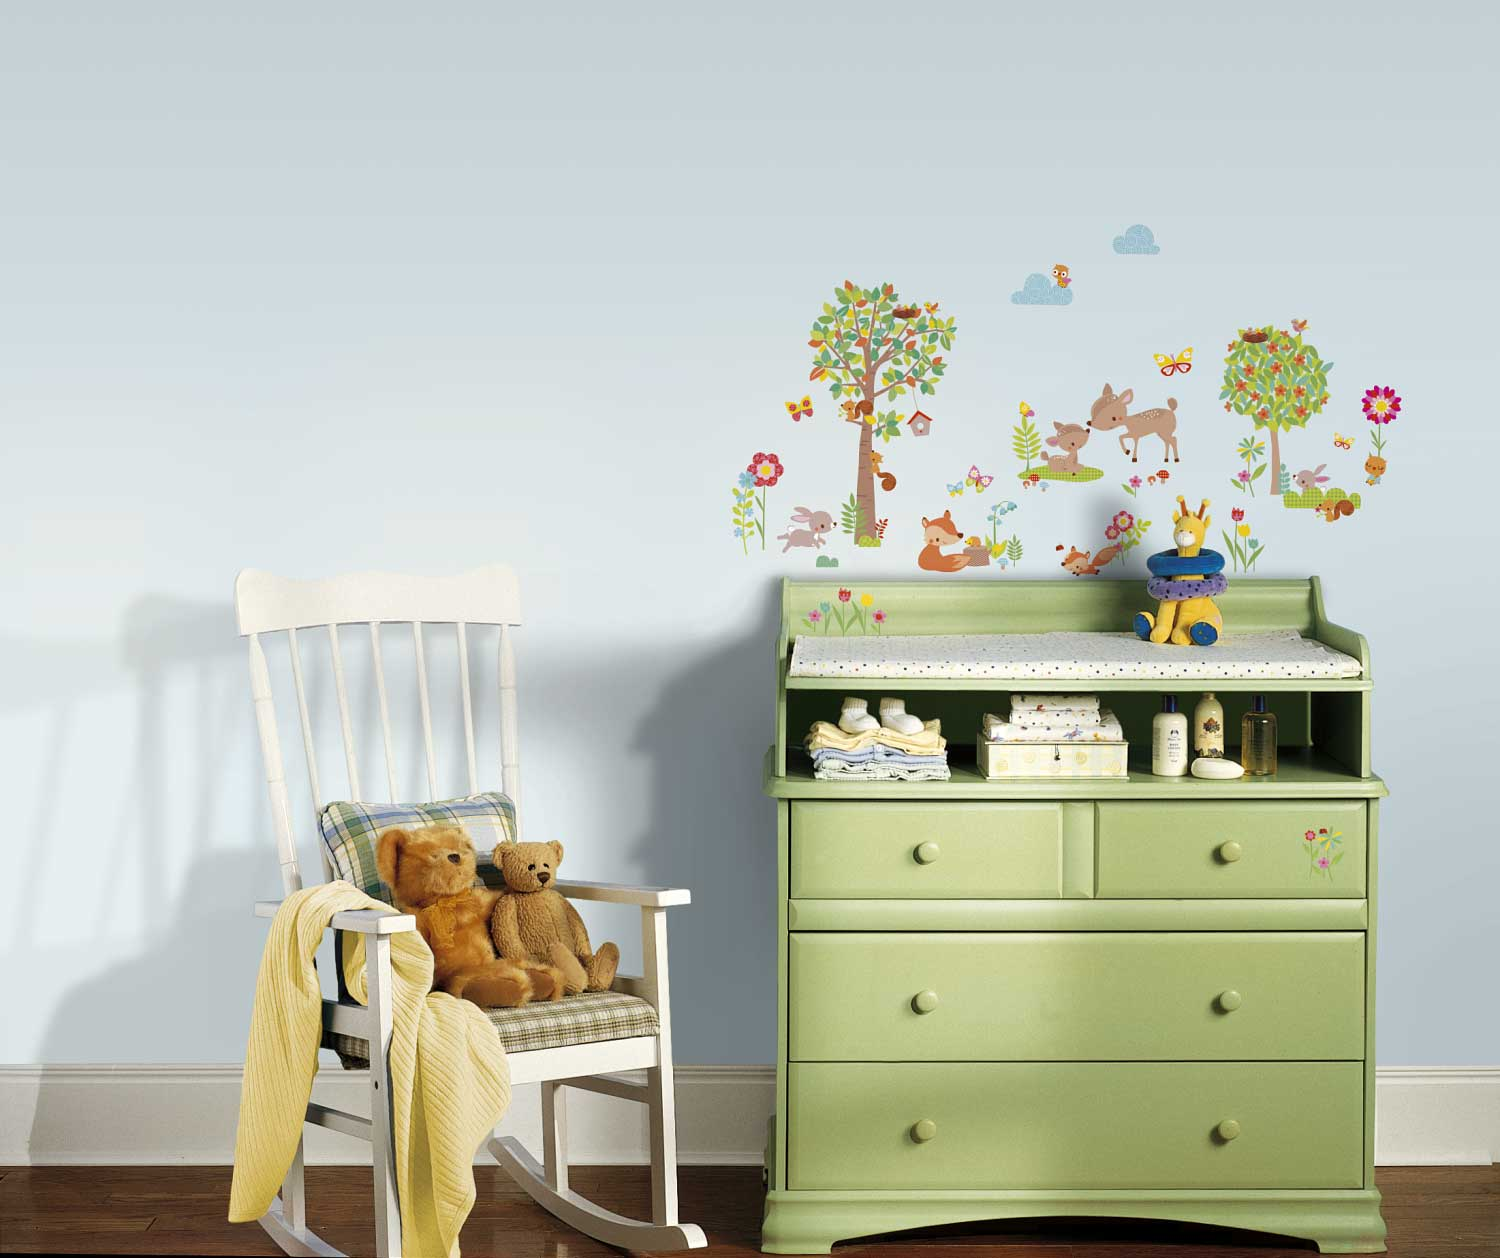 roommates wandsticker tiere des waldes babyzimmer kinderzimmer. Black Bedroom Furniture Sets. Home Design Ideas